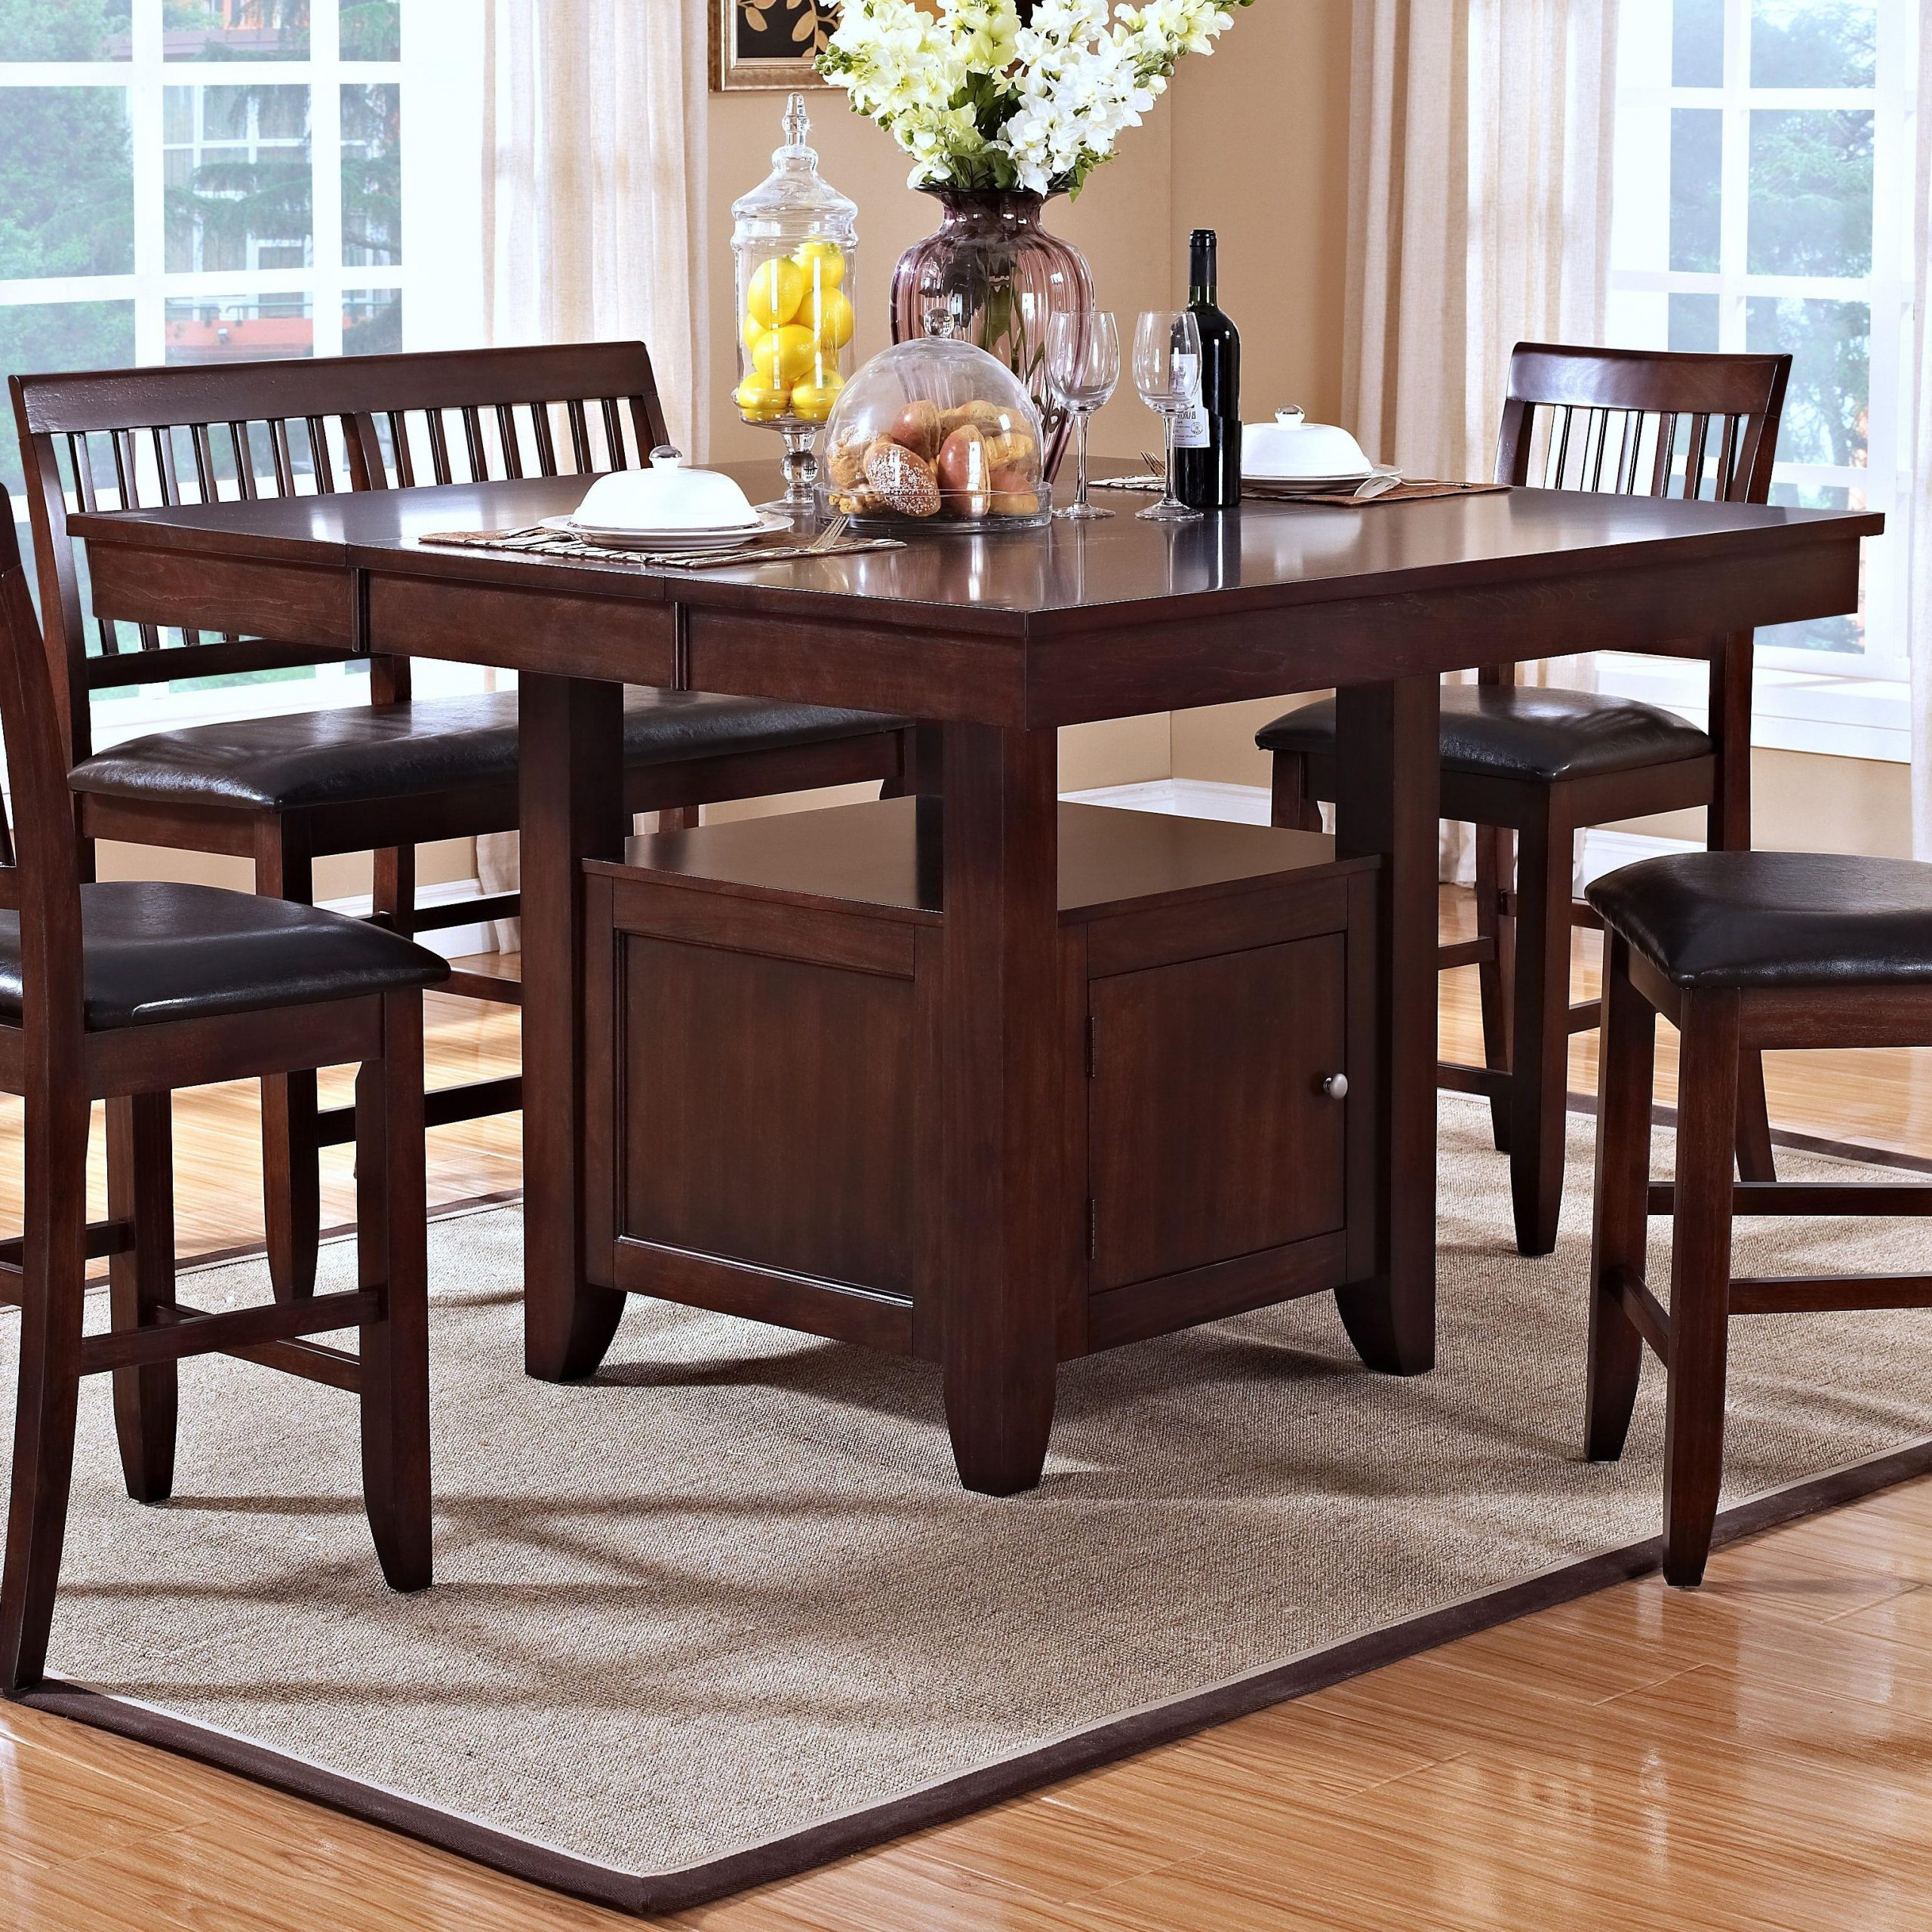 Trendy New Classic Kaylee Counter Height Table With Storage Regarding Avondale Counter Height Dining Tables (View 7 of 25)